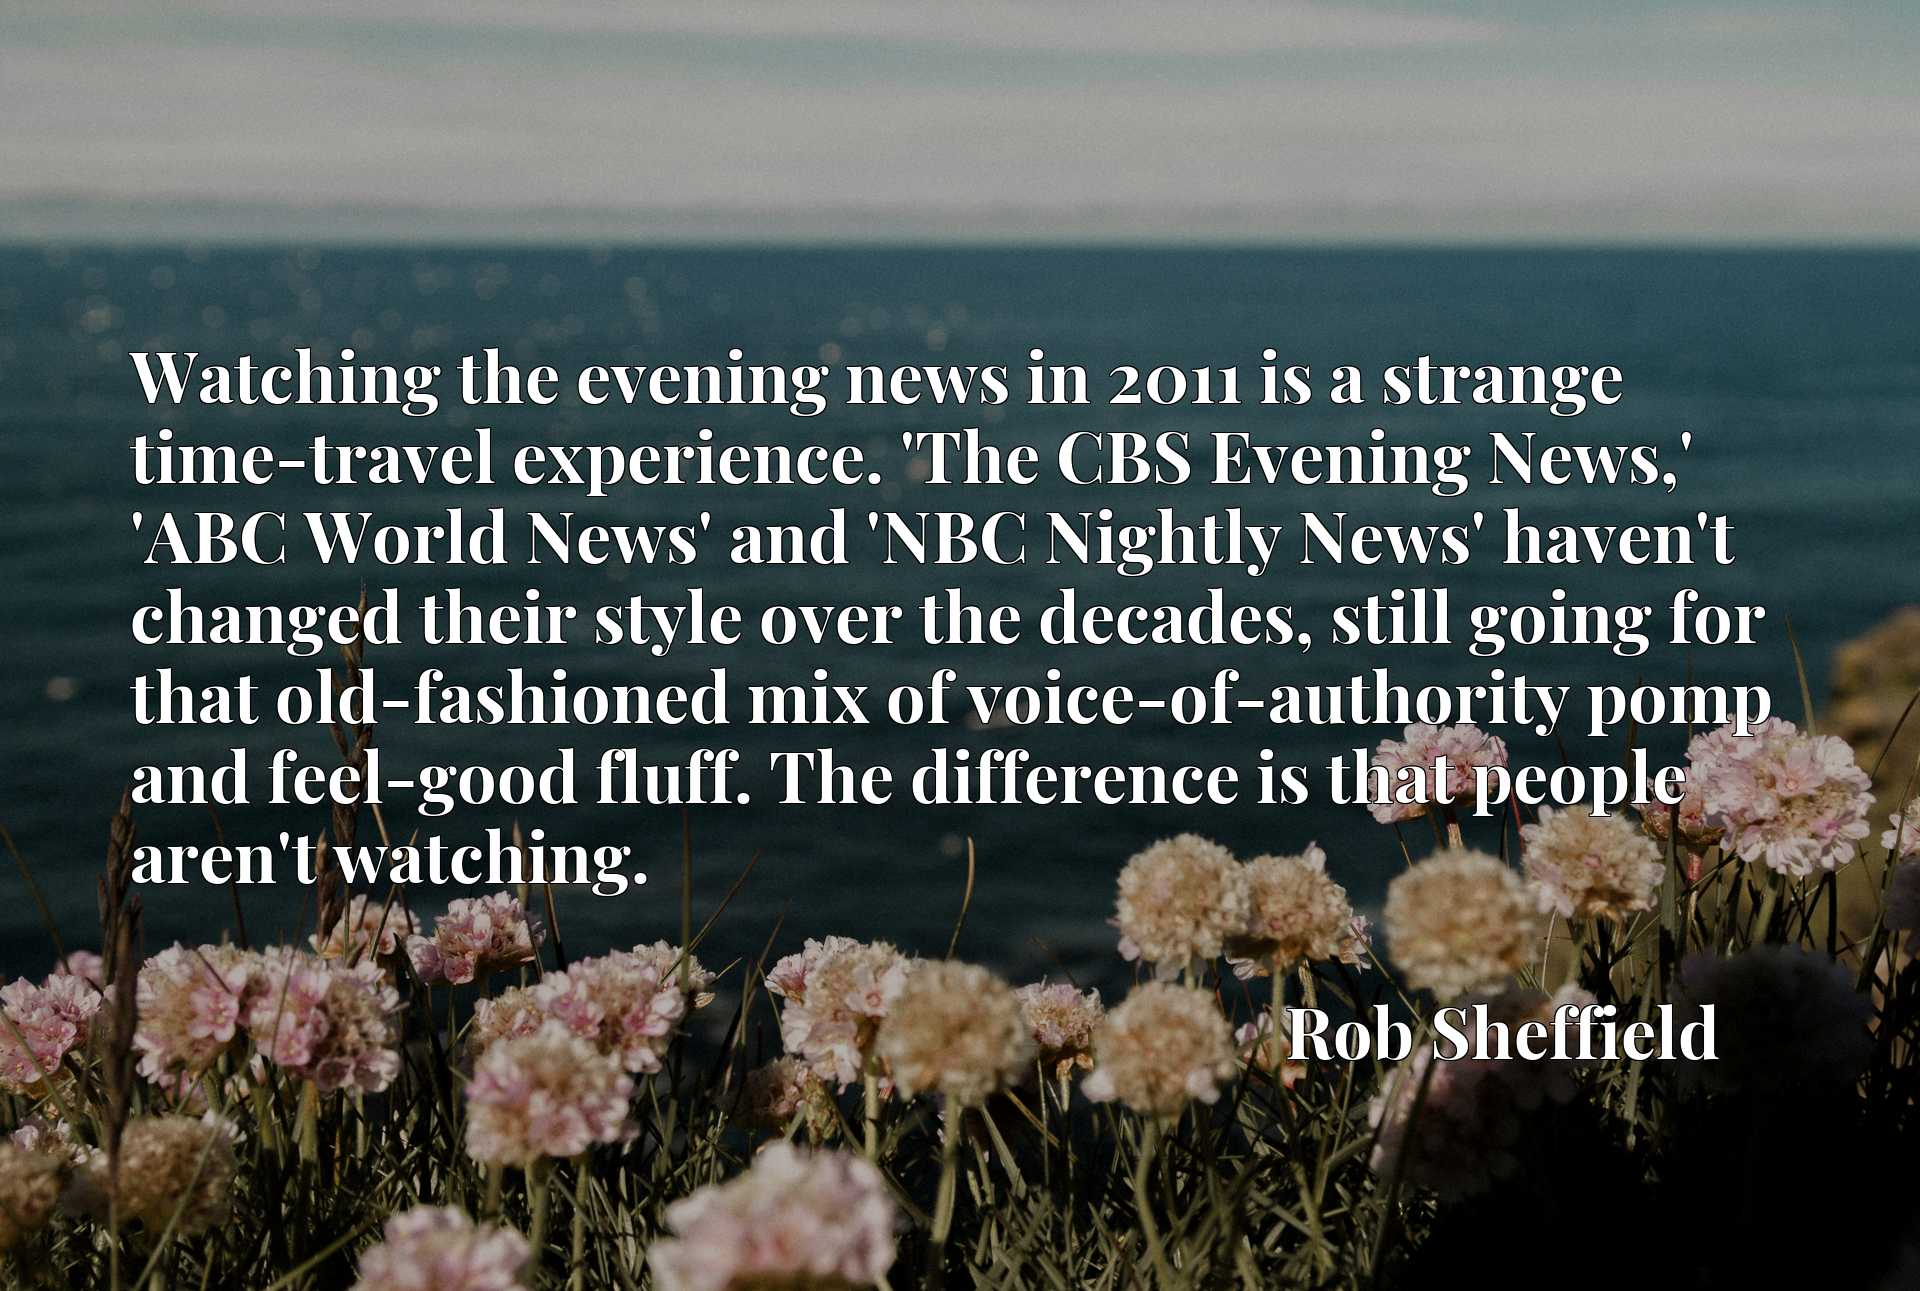 Watching the evening news in 2011 is a strange time-travel experience. 'The CBS Evening News,' 'ABC World News' and 'NBC Nightly News' haven't changed their style over the decades, still going for that old-fashioned mix of voice-of-authority pomp and feel-good fluff. The difference is that people aren't watching.